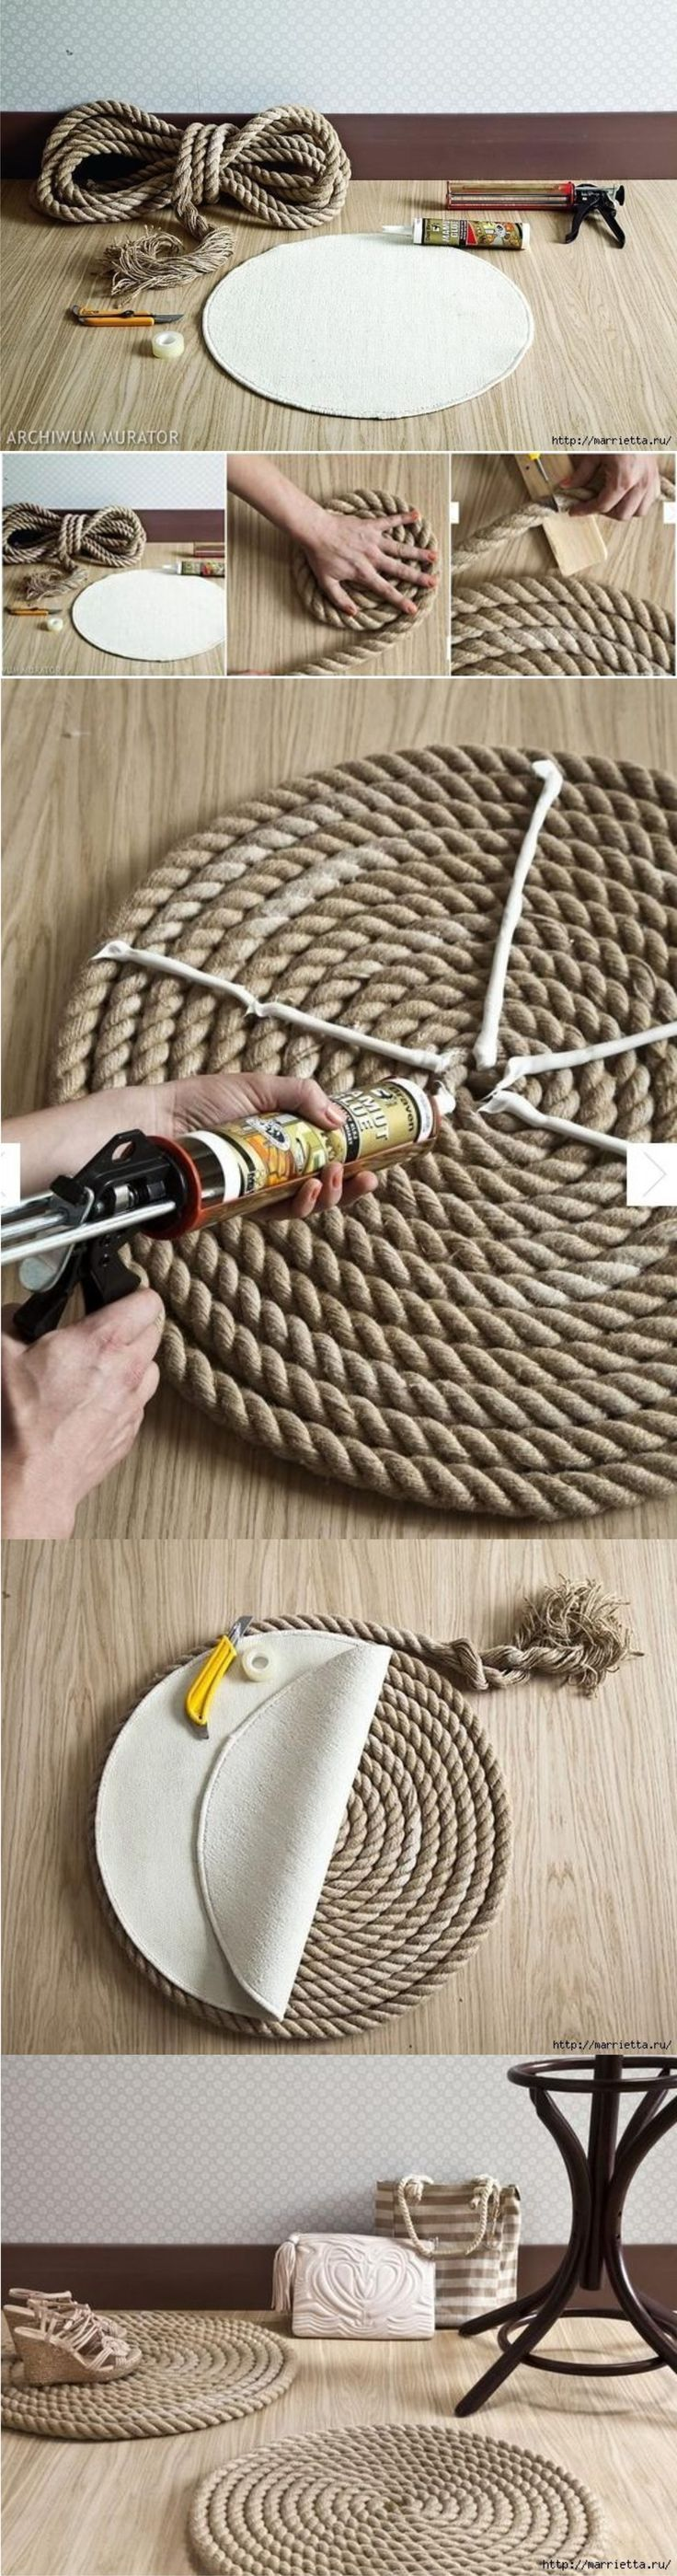 25 Awesome DIY Crafting Ideas For Working With Ropes 8